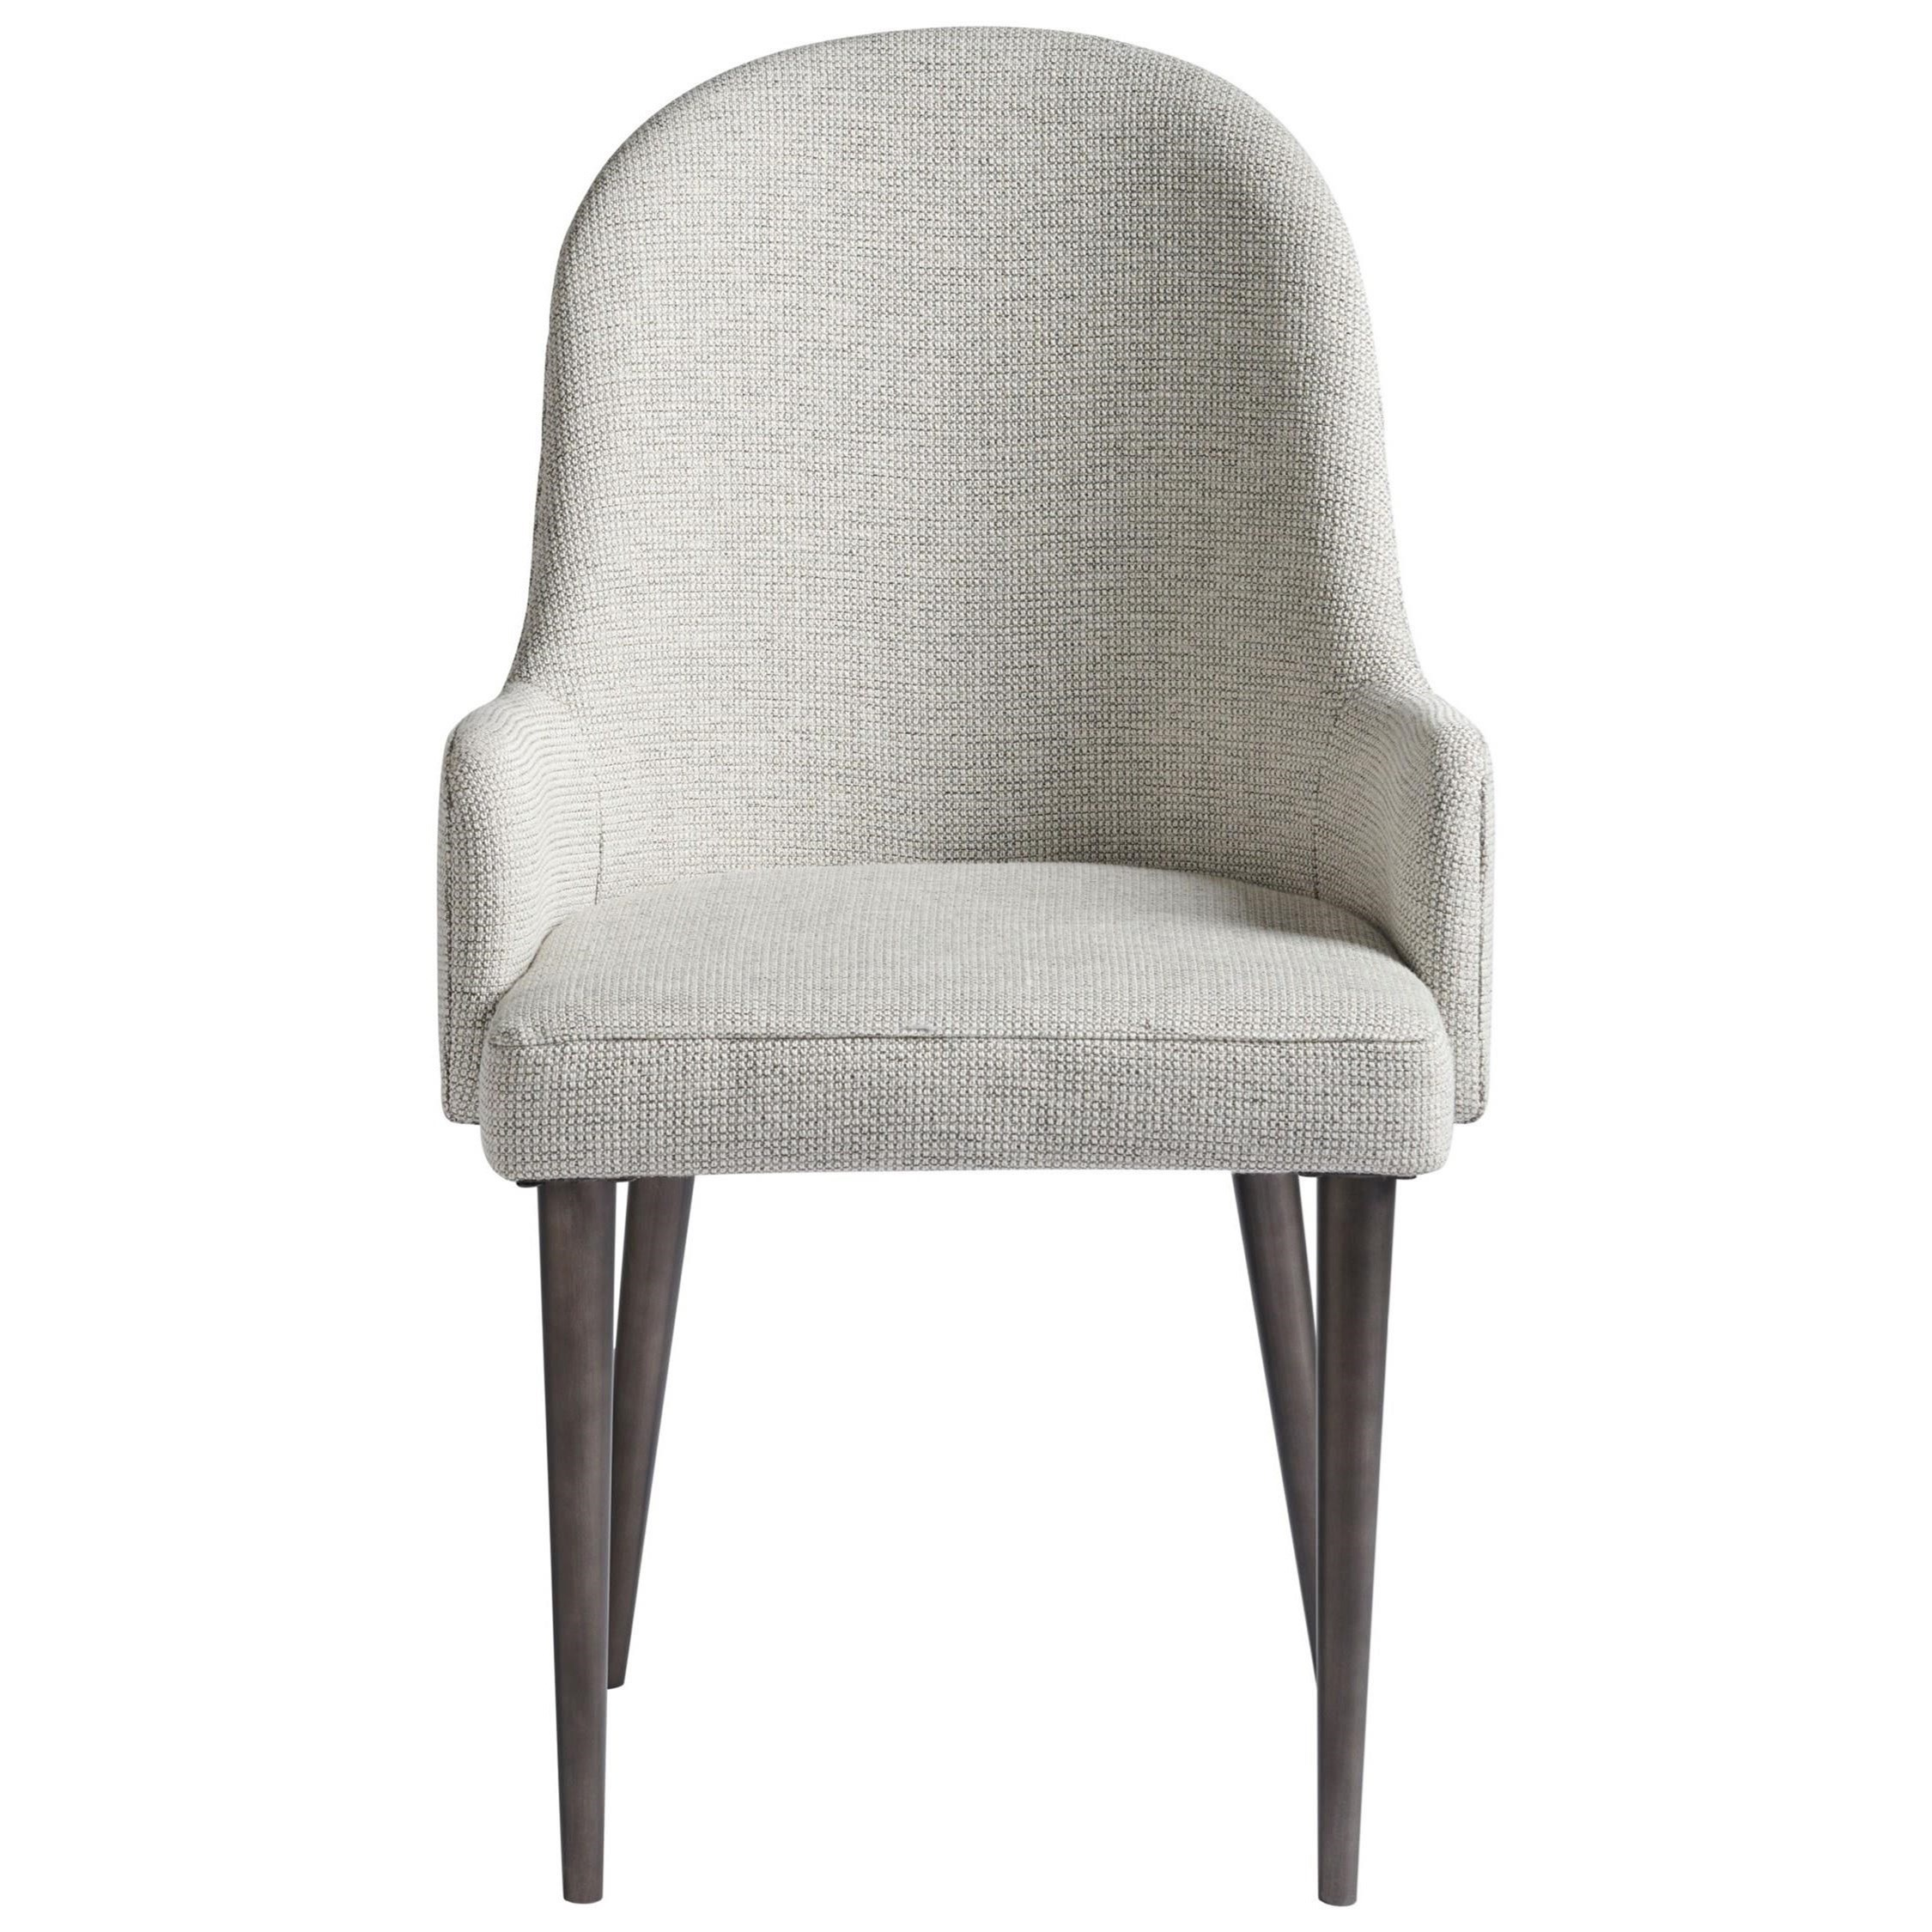 Nina Magon 941 Yves Dining Arm Chair by Universal at Baer's Furniture